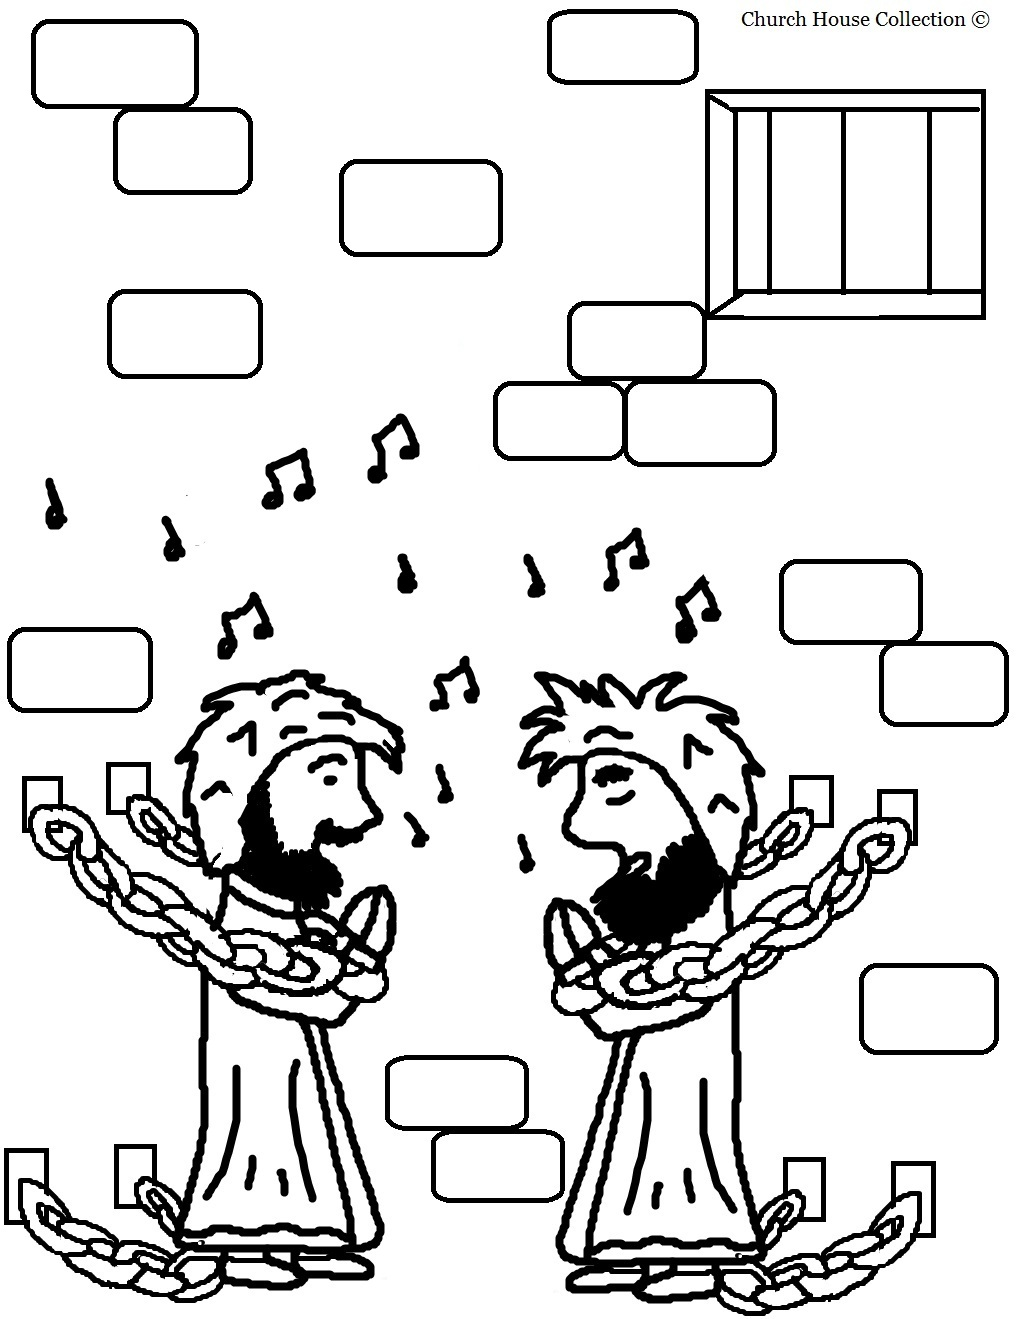 Paulo and silas coloring pages ~ Paul And Silas Coloring Pages